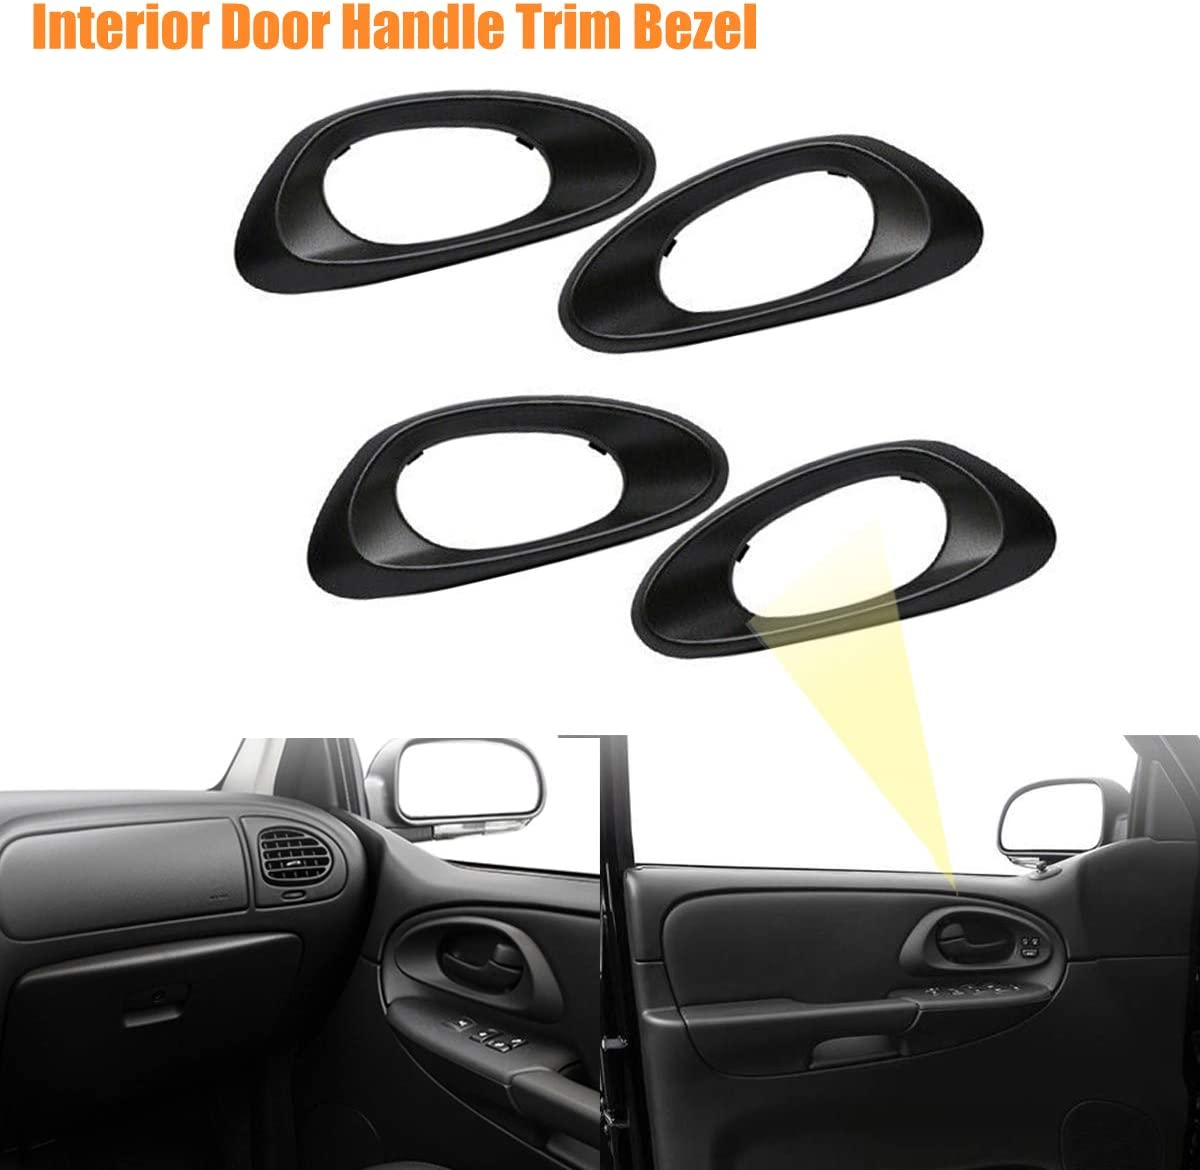 Black Kit of 4 Inside Driver Passenger Side NPAUTO Interior Front Rear Left Right Door Handle Trim Bezels Replacement for Chevy Trailblazer EXT 2002 2003 2004 2005 2006 2007 2008 2009